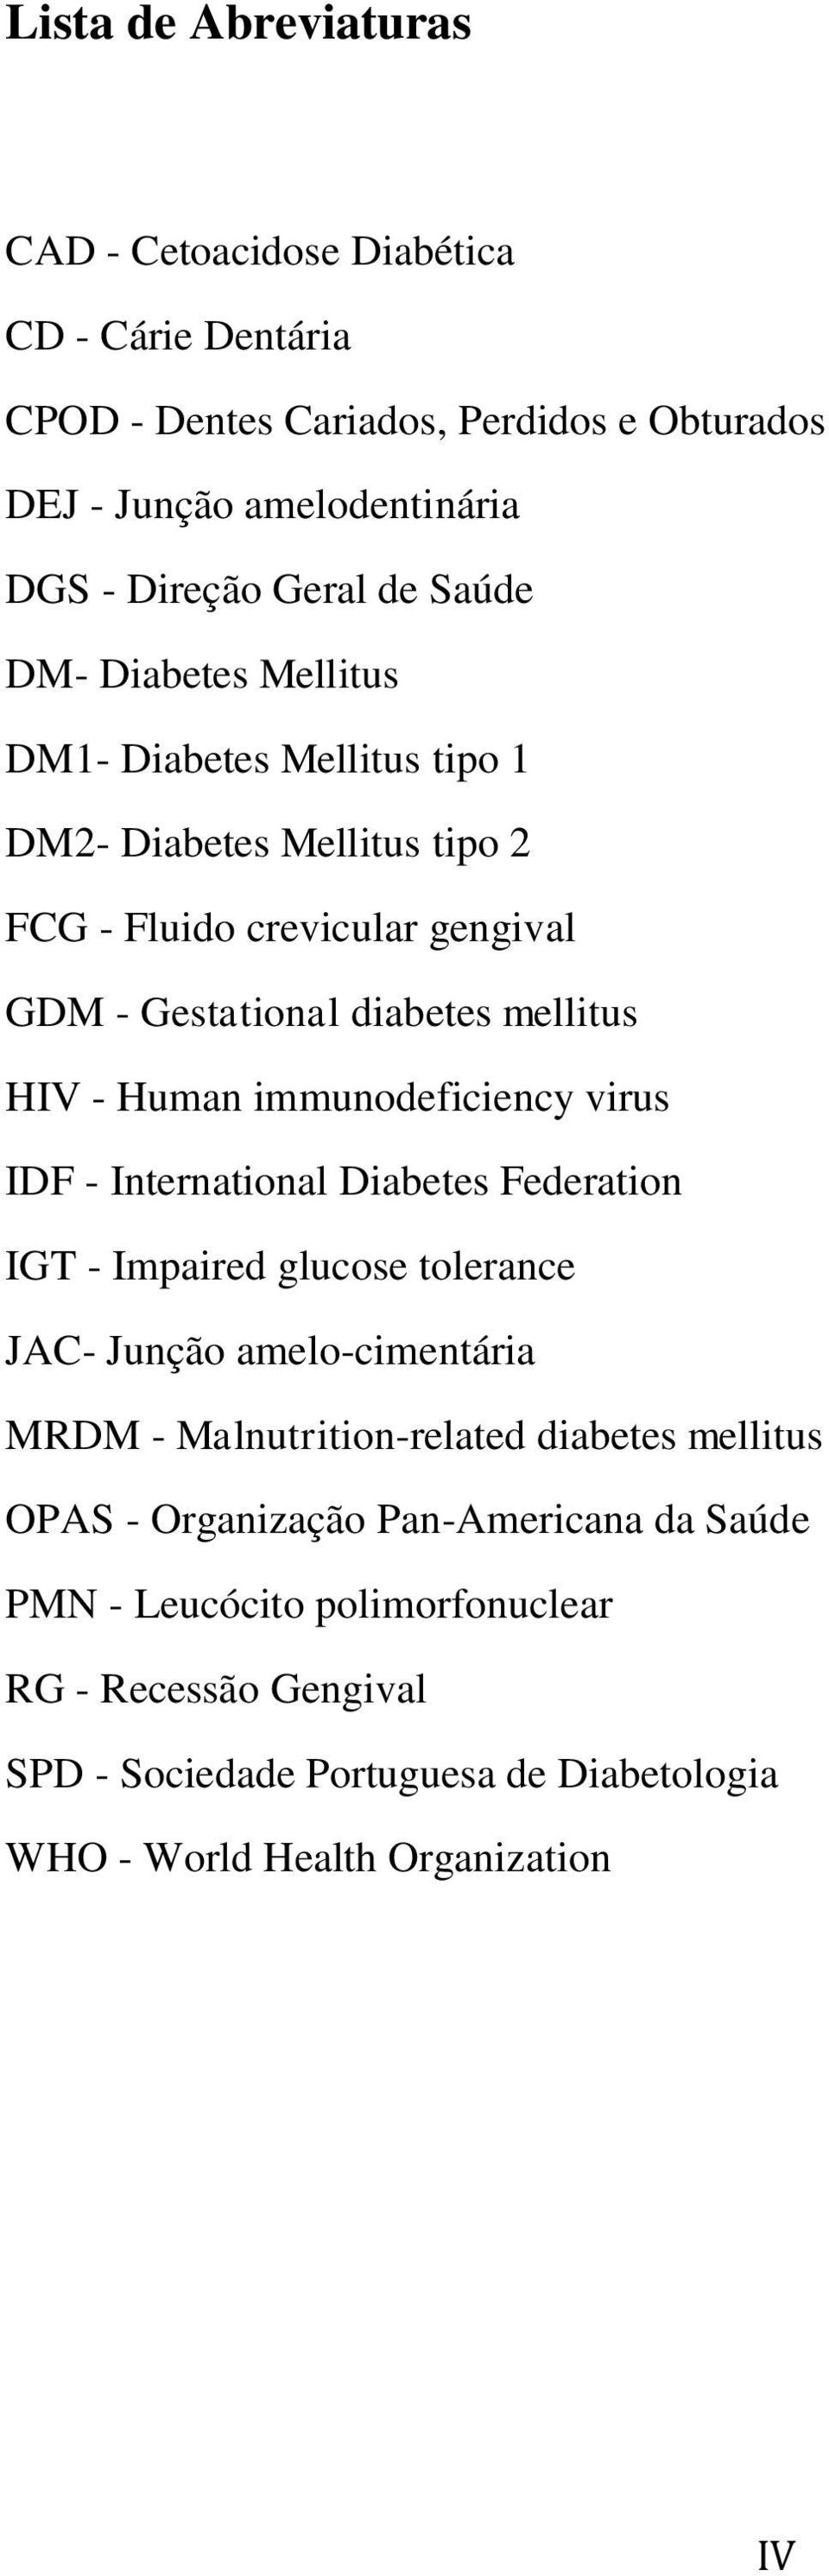 immunodeficiency virus IDF - International Diabetes Federation IGT - Impaired glucose tolerance JAC- Junção amelo-cimentária MRDM - Malnutrition-related diabetes mellitus